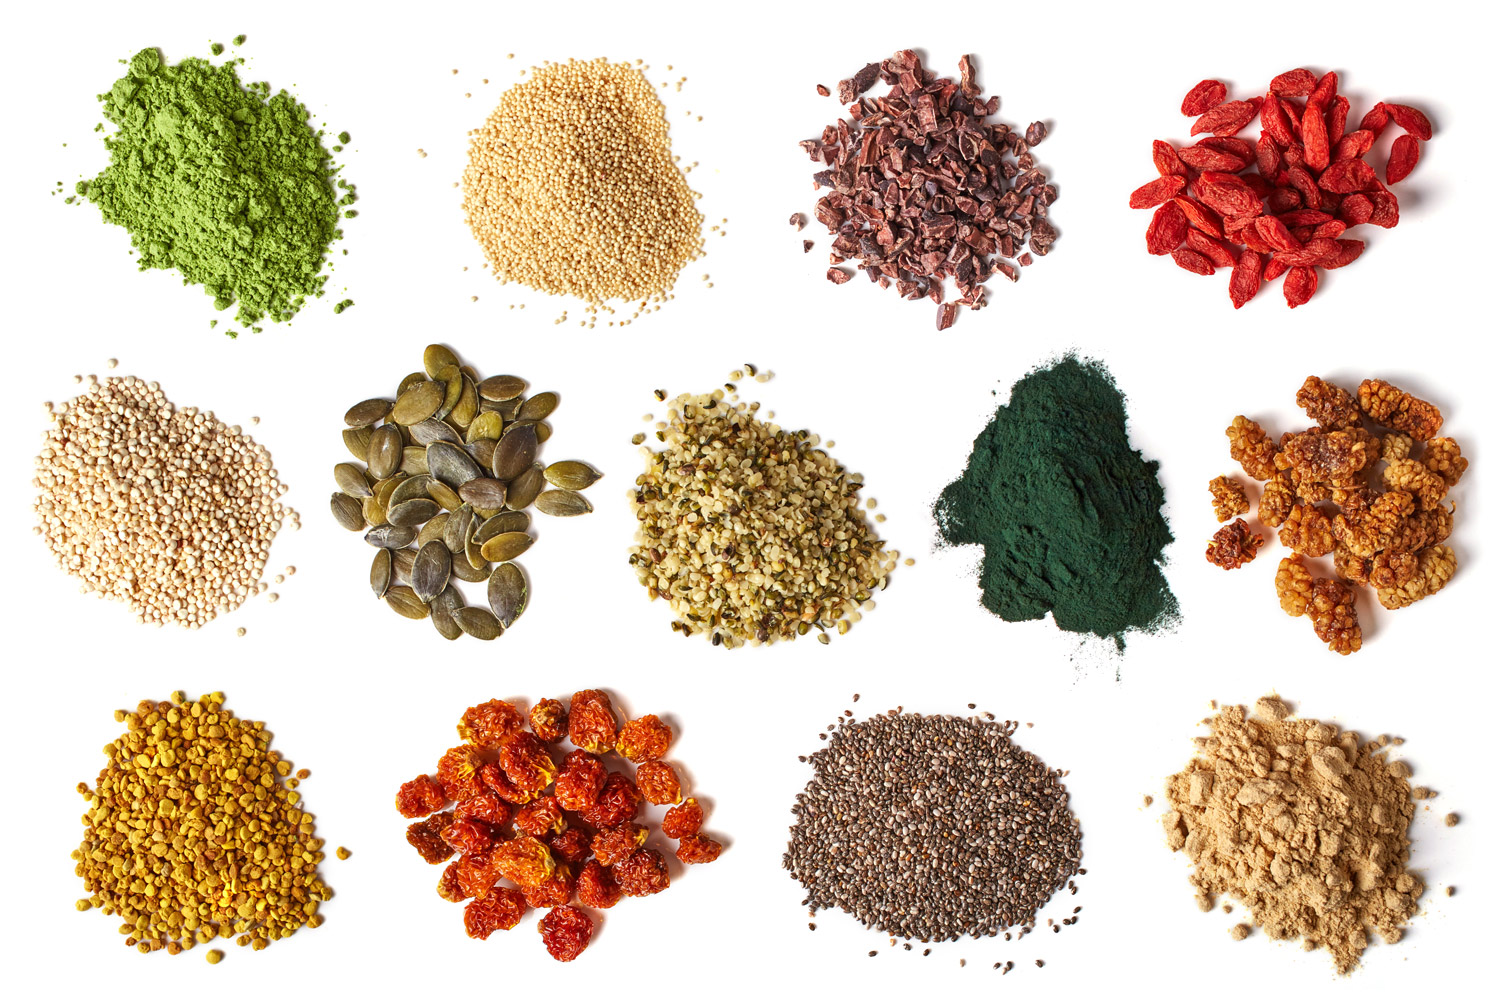 Superfoods-Goji-betties-chia-turmetic-green-tea-spirulina-flatlay.jpg